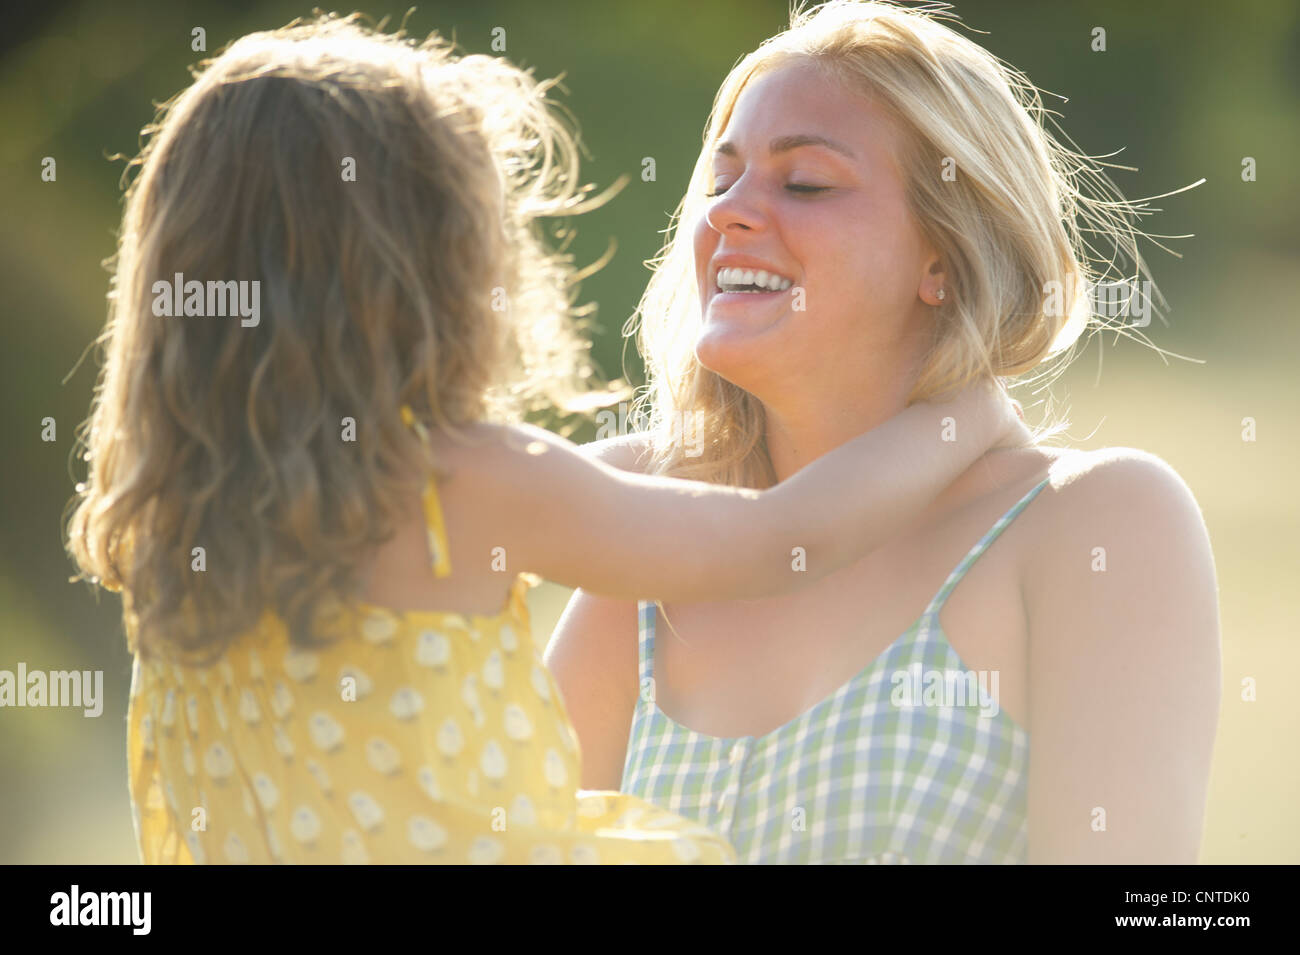 Mother holding daughter outdoors - Stock Image